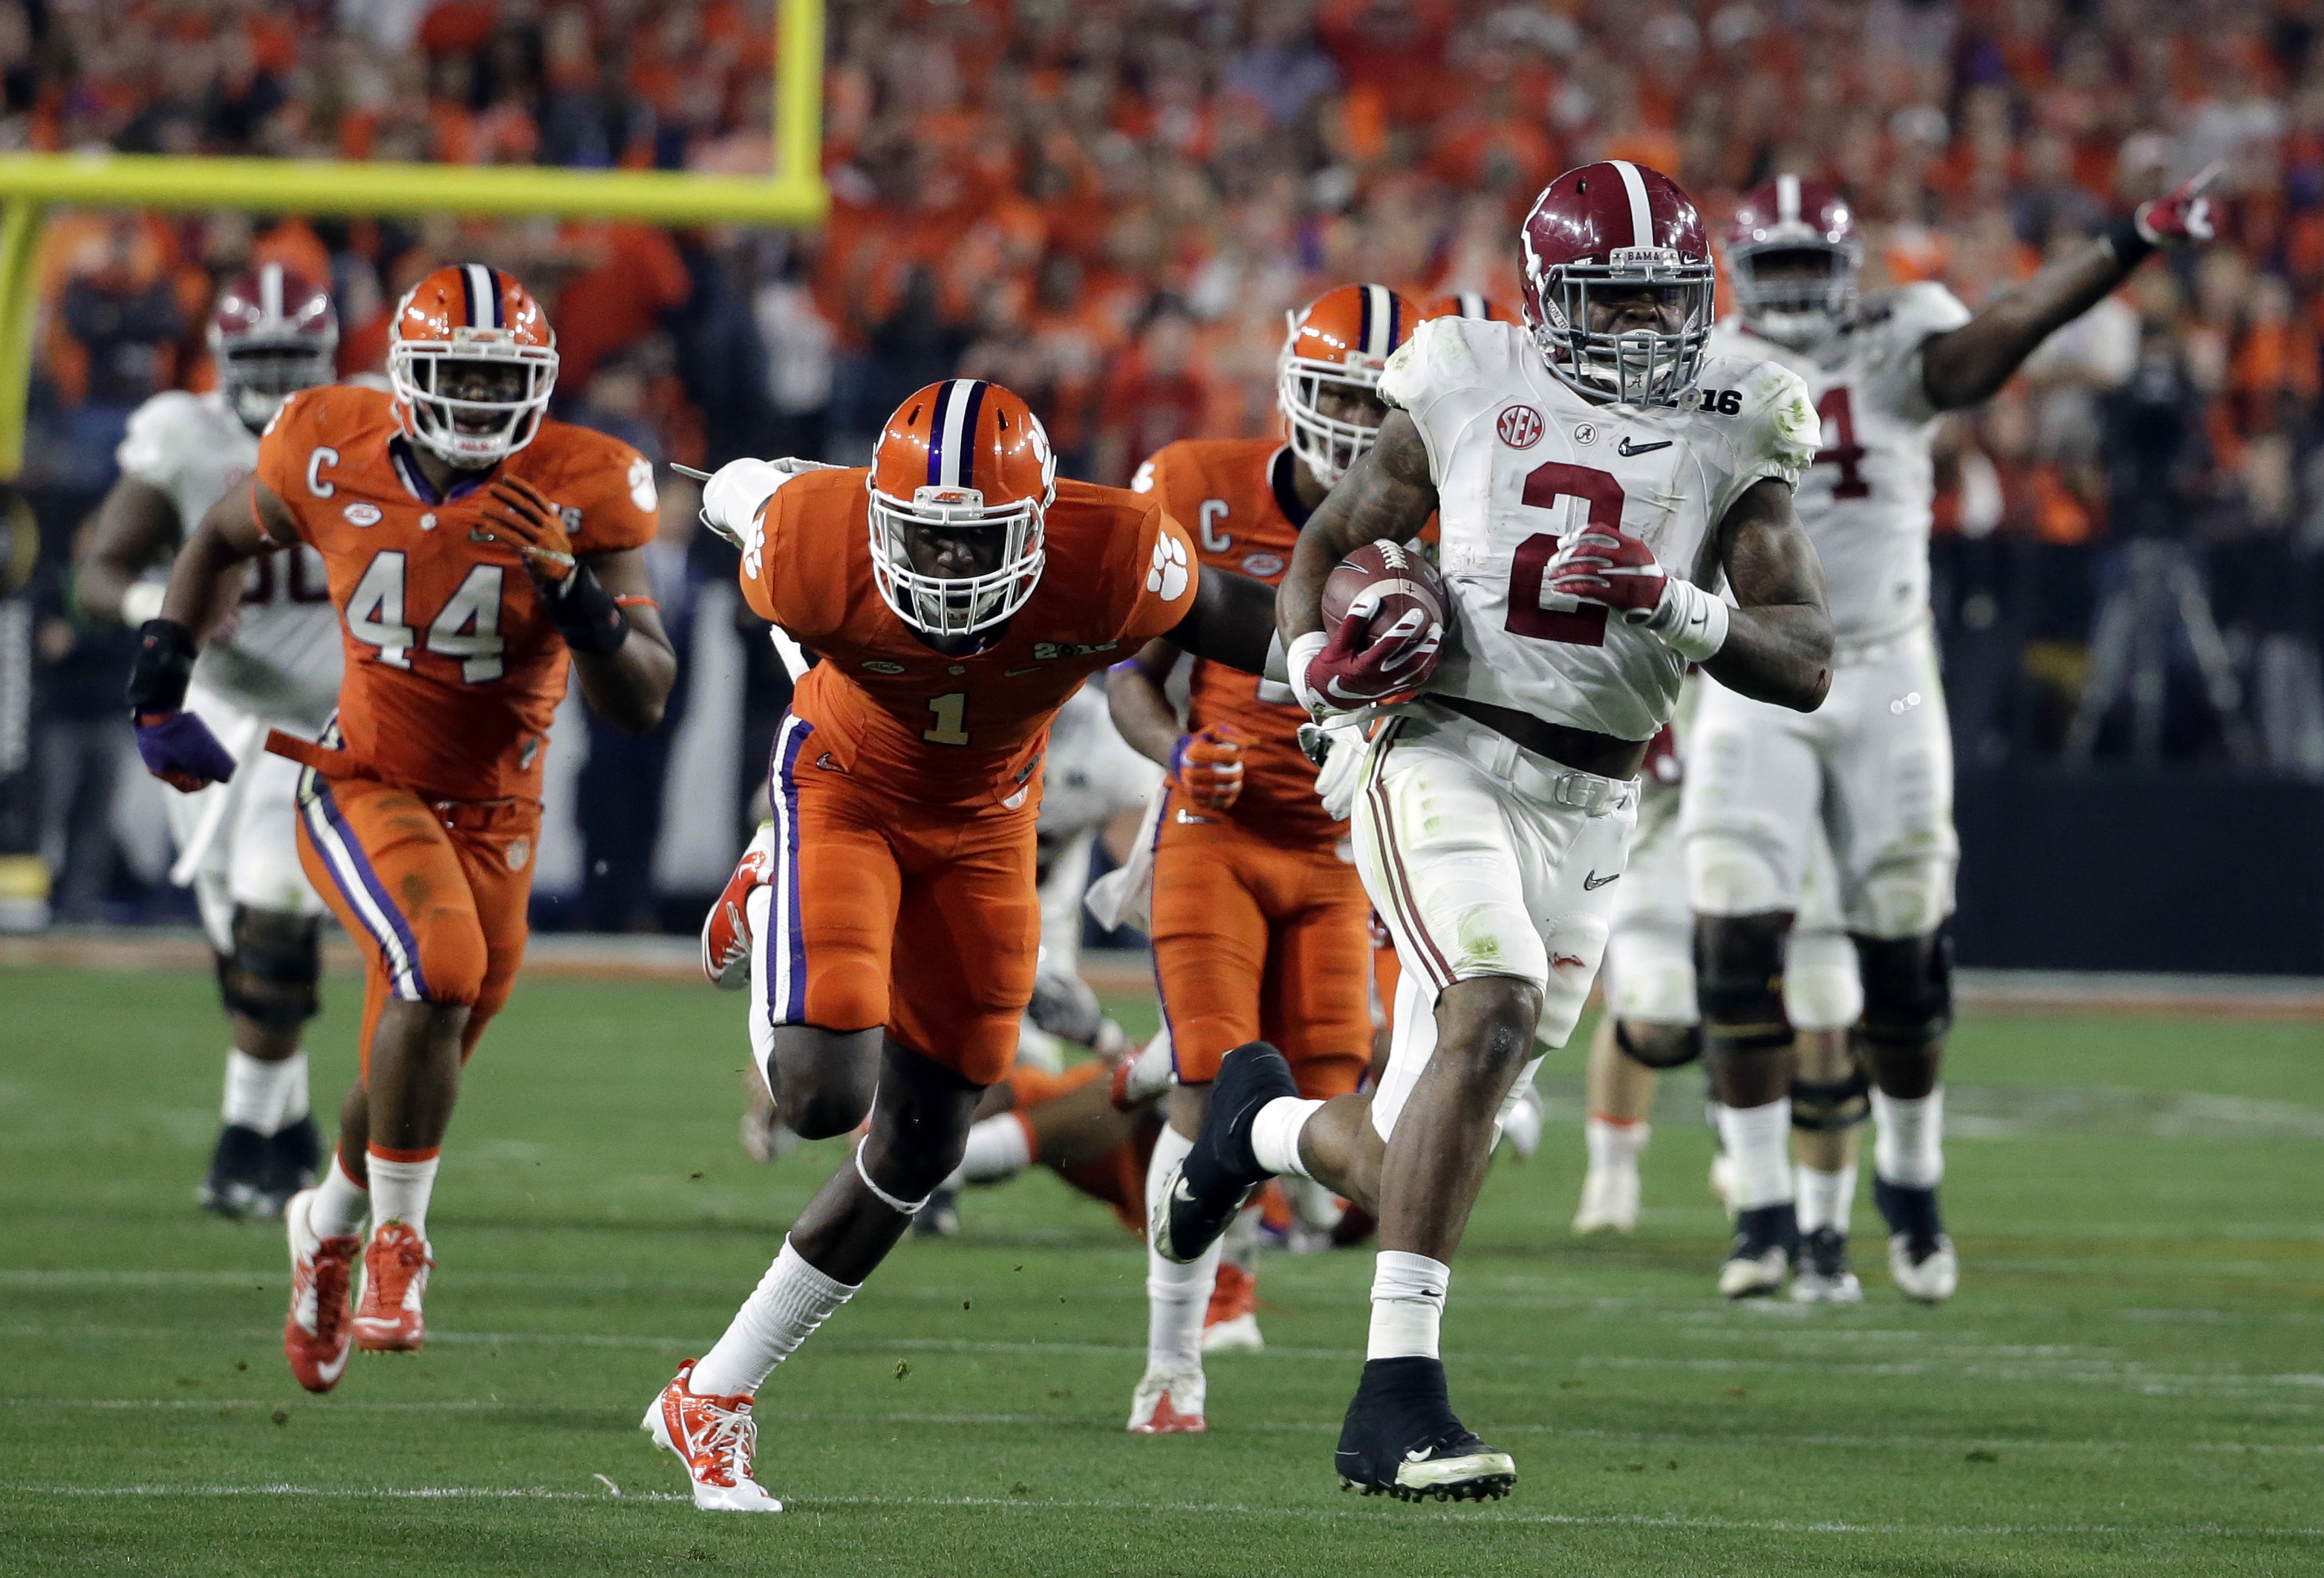 FILE - In this Jan. 11,2016, file photo, Alabama's Derrick Henry runs for a touchdown during the first half of the NCAA college football playoff championship game against Clemson in Glendale, Ariz. Henry figures to be either a late first-round or a second